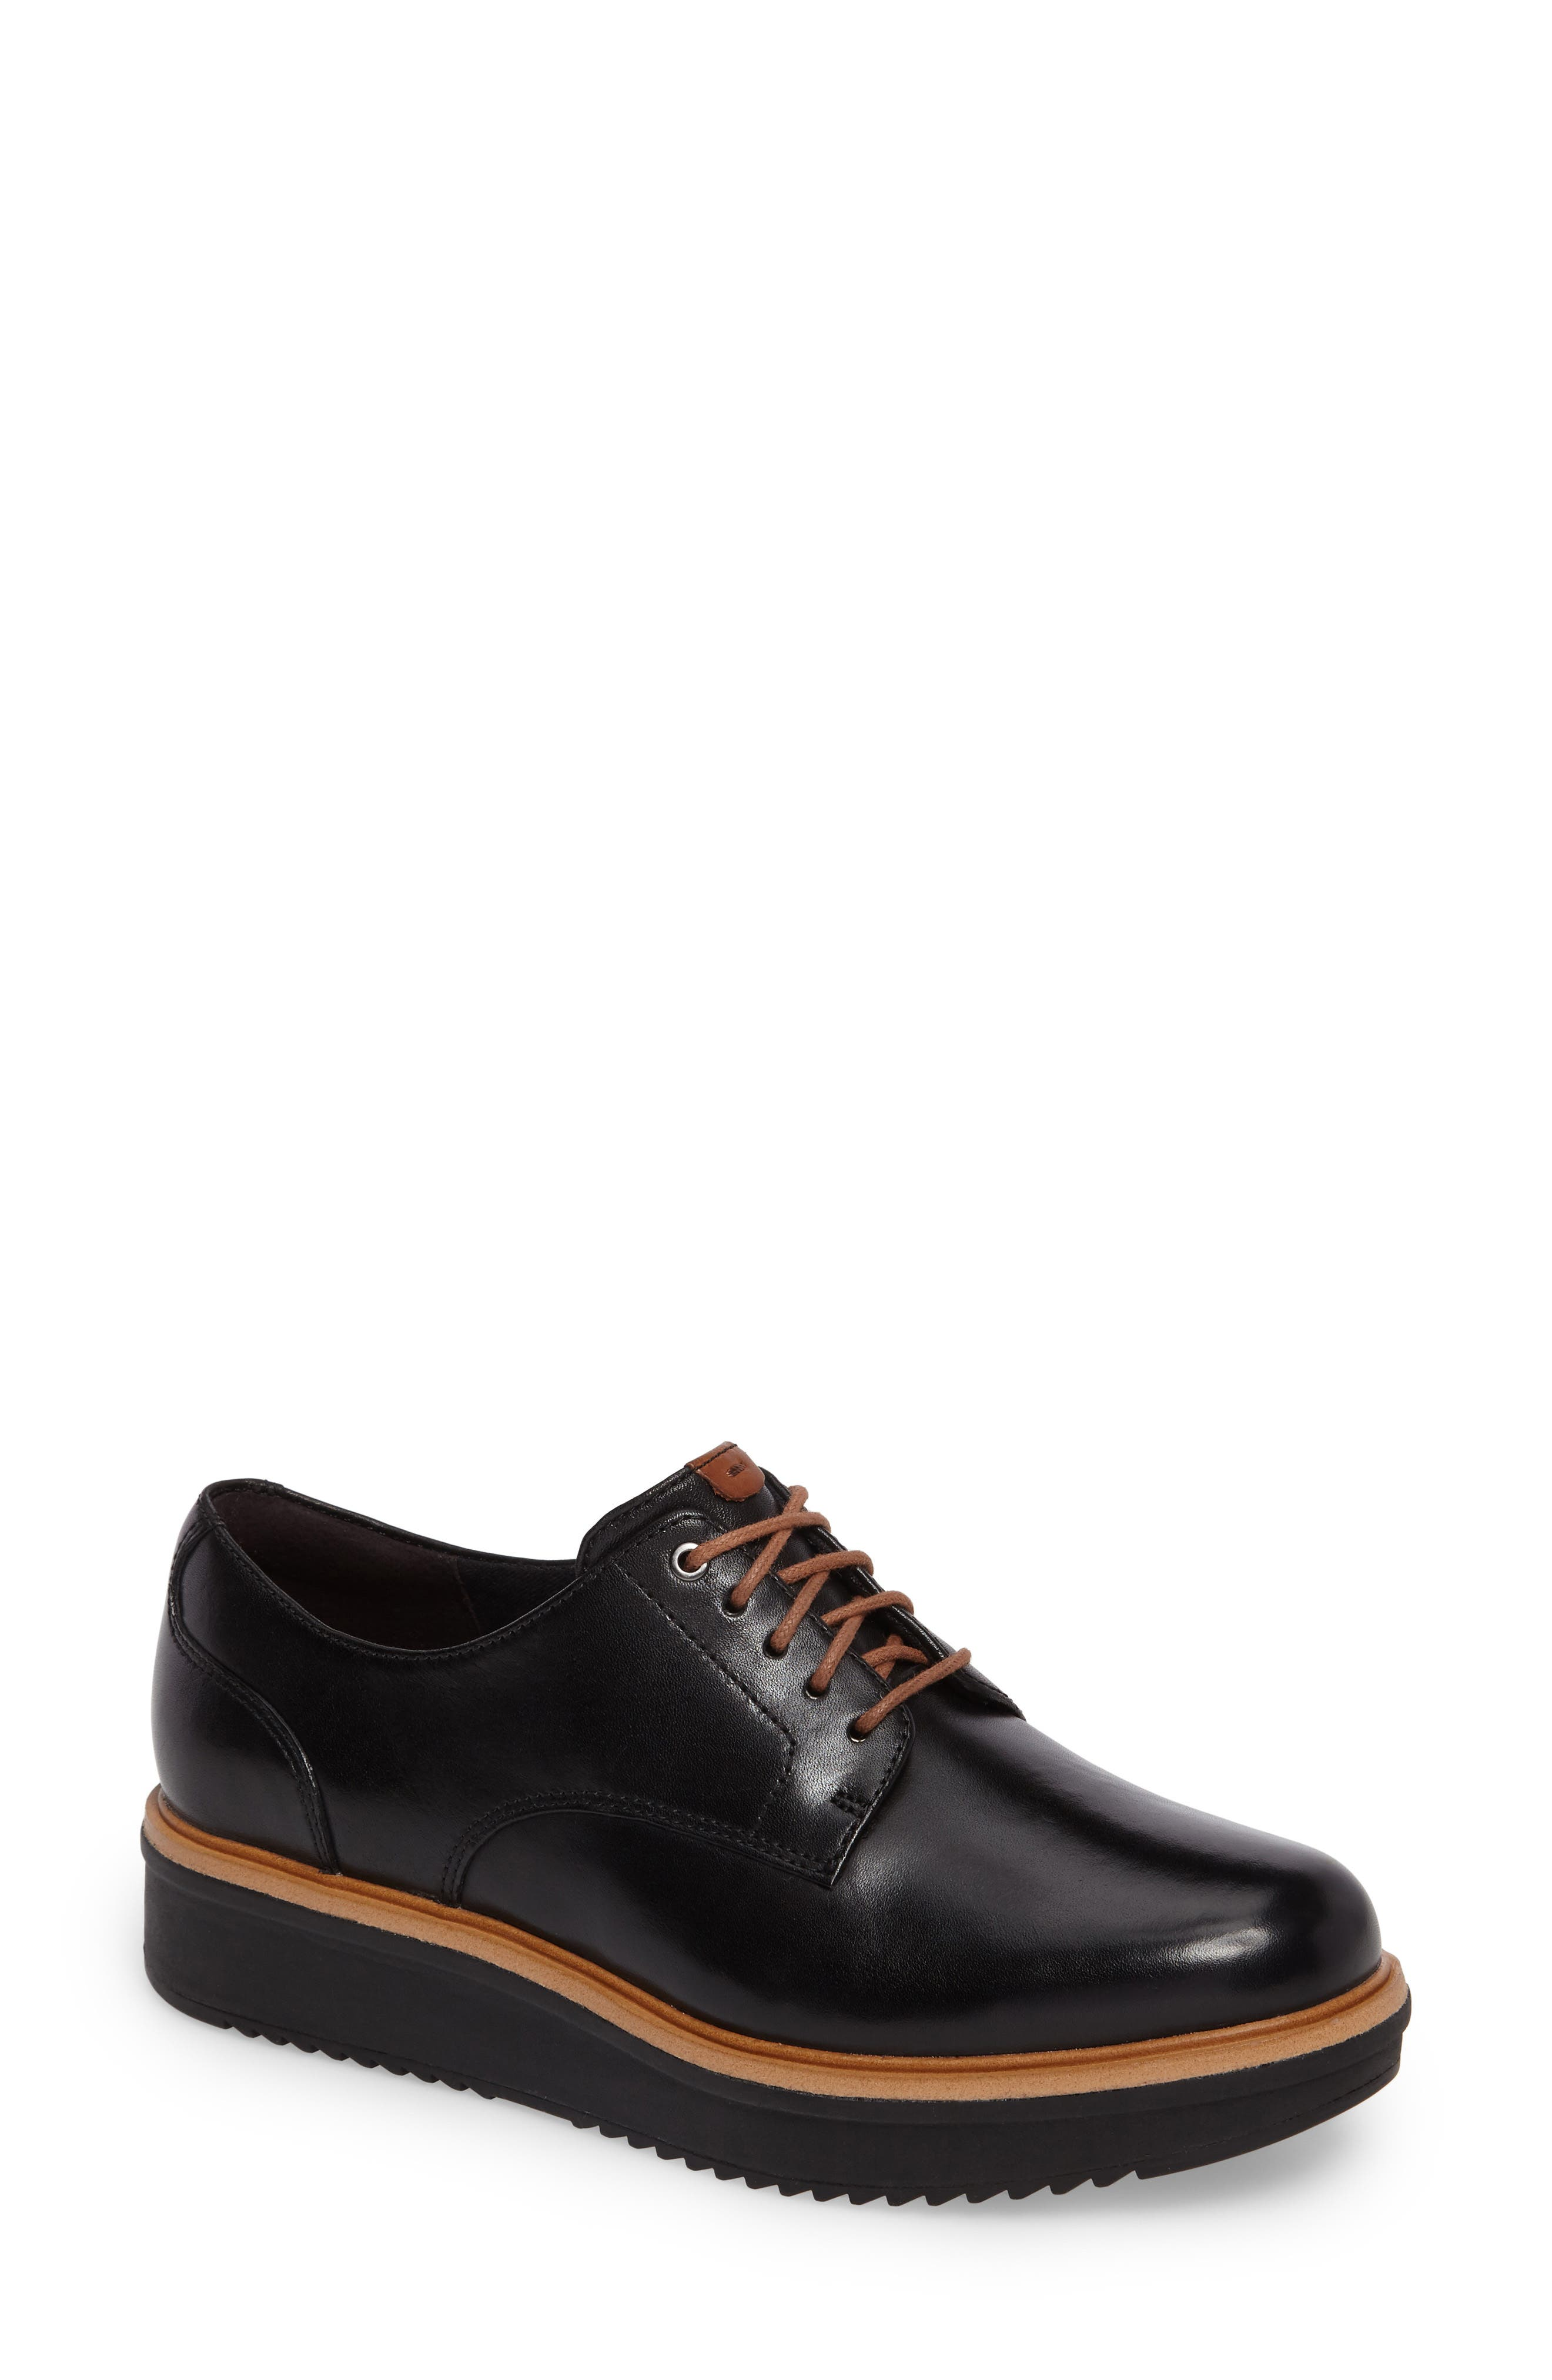 Alternate Image 1 Selected - Clarks® Teadale Rhea Platform Oxford (Women)